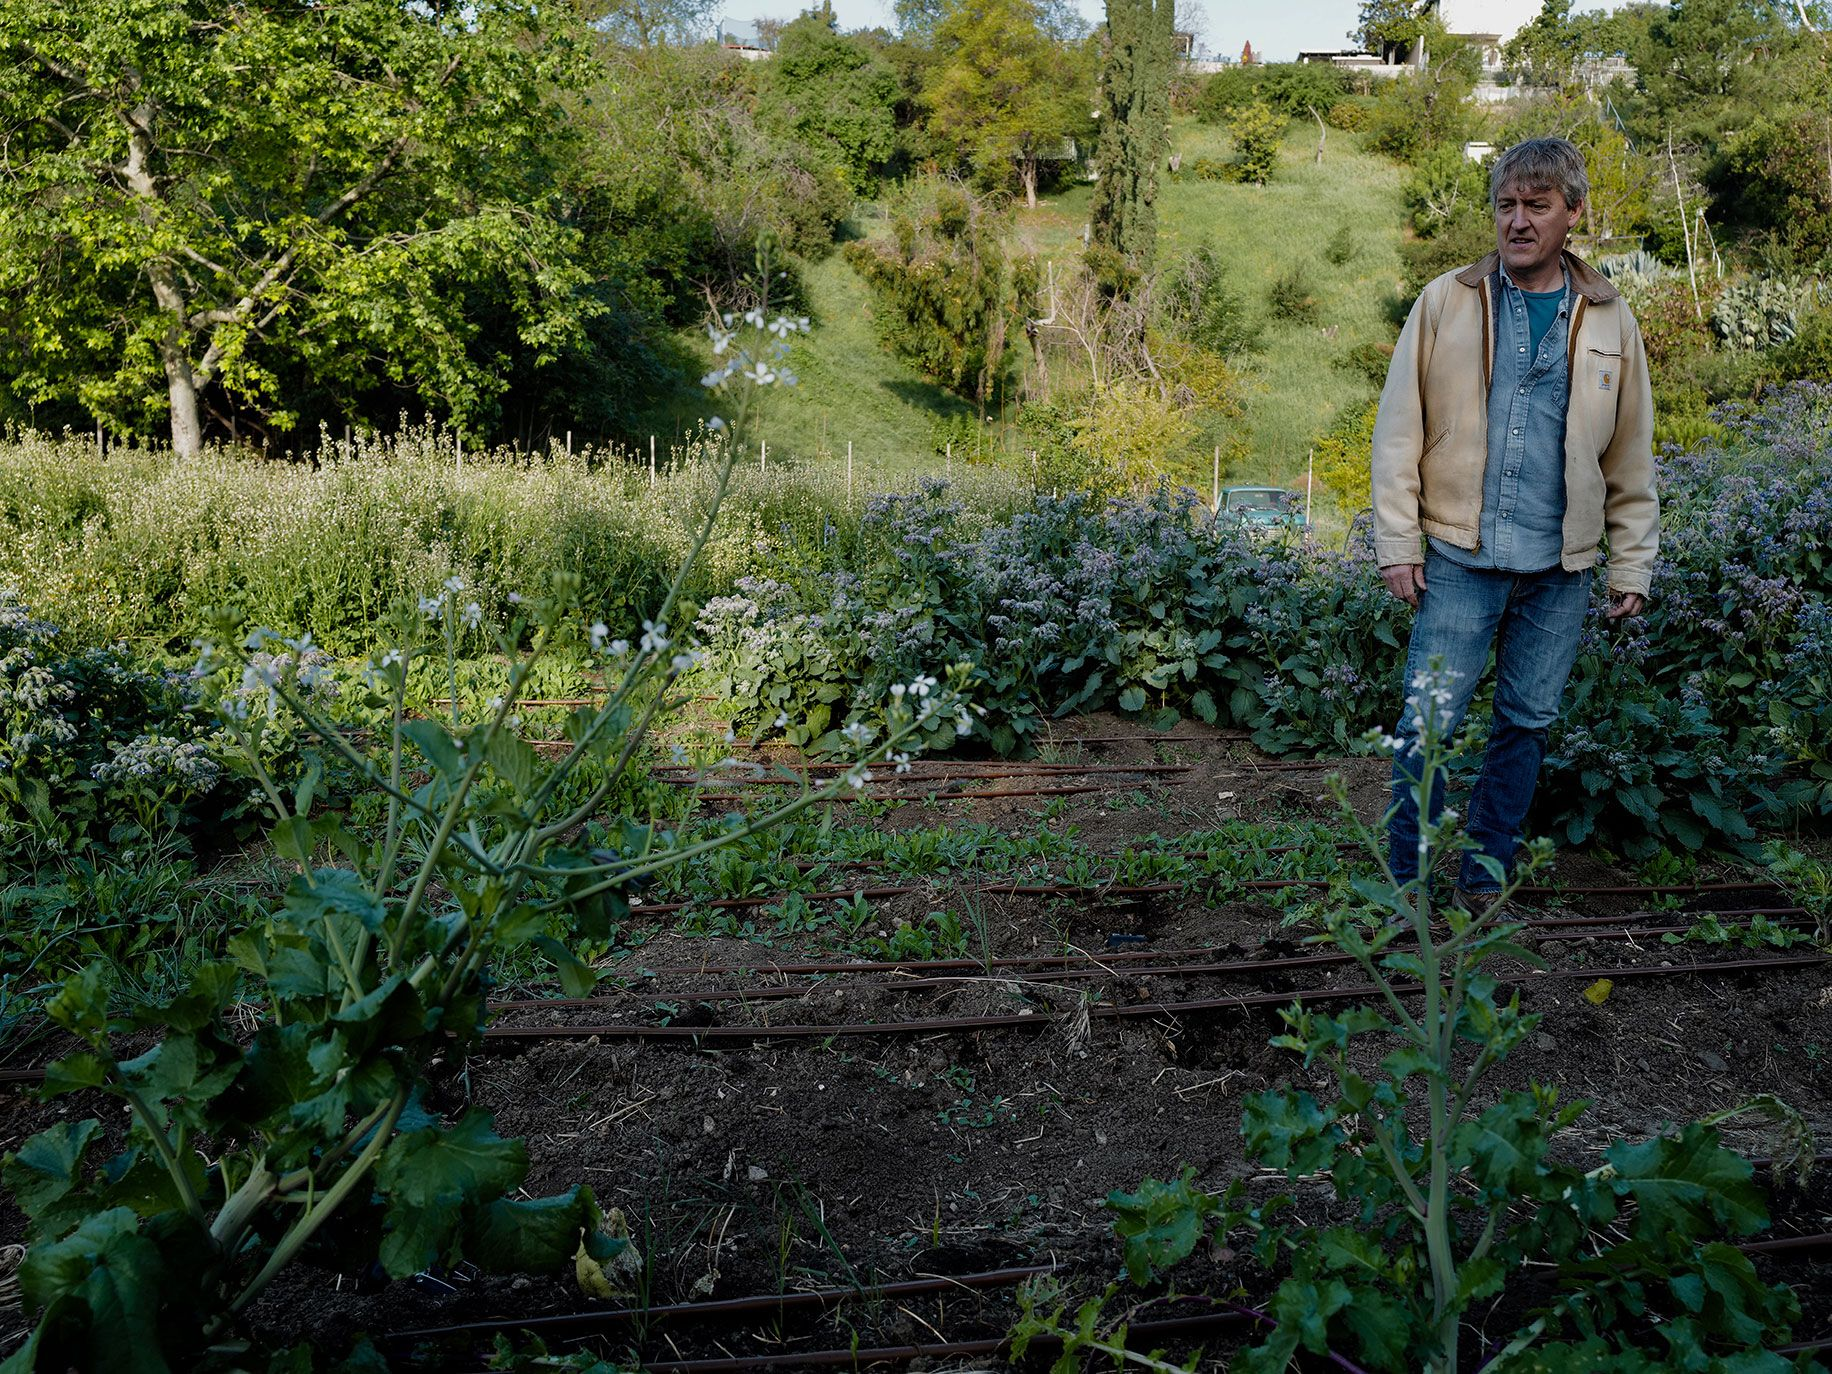 A photograph of Writer Dean Kuipers inspecting a crop of borage, arugula, radishes, mustard greens, turnips, and other cool-season crops.